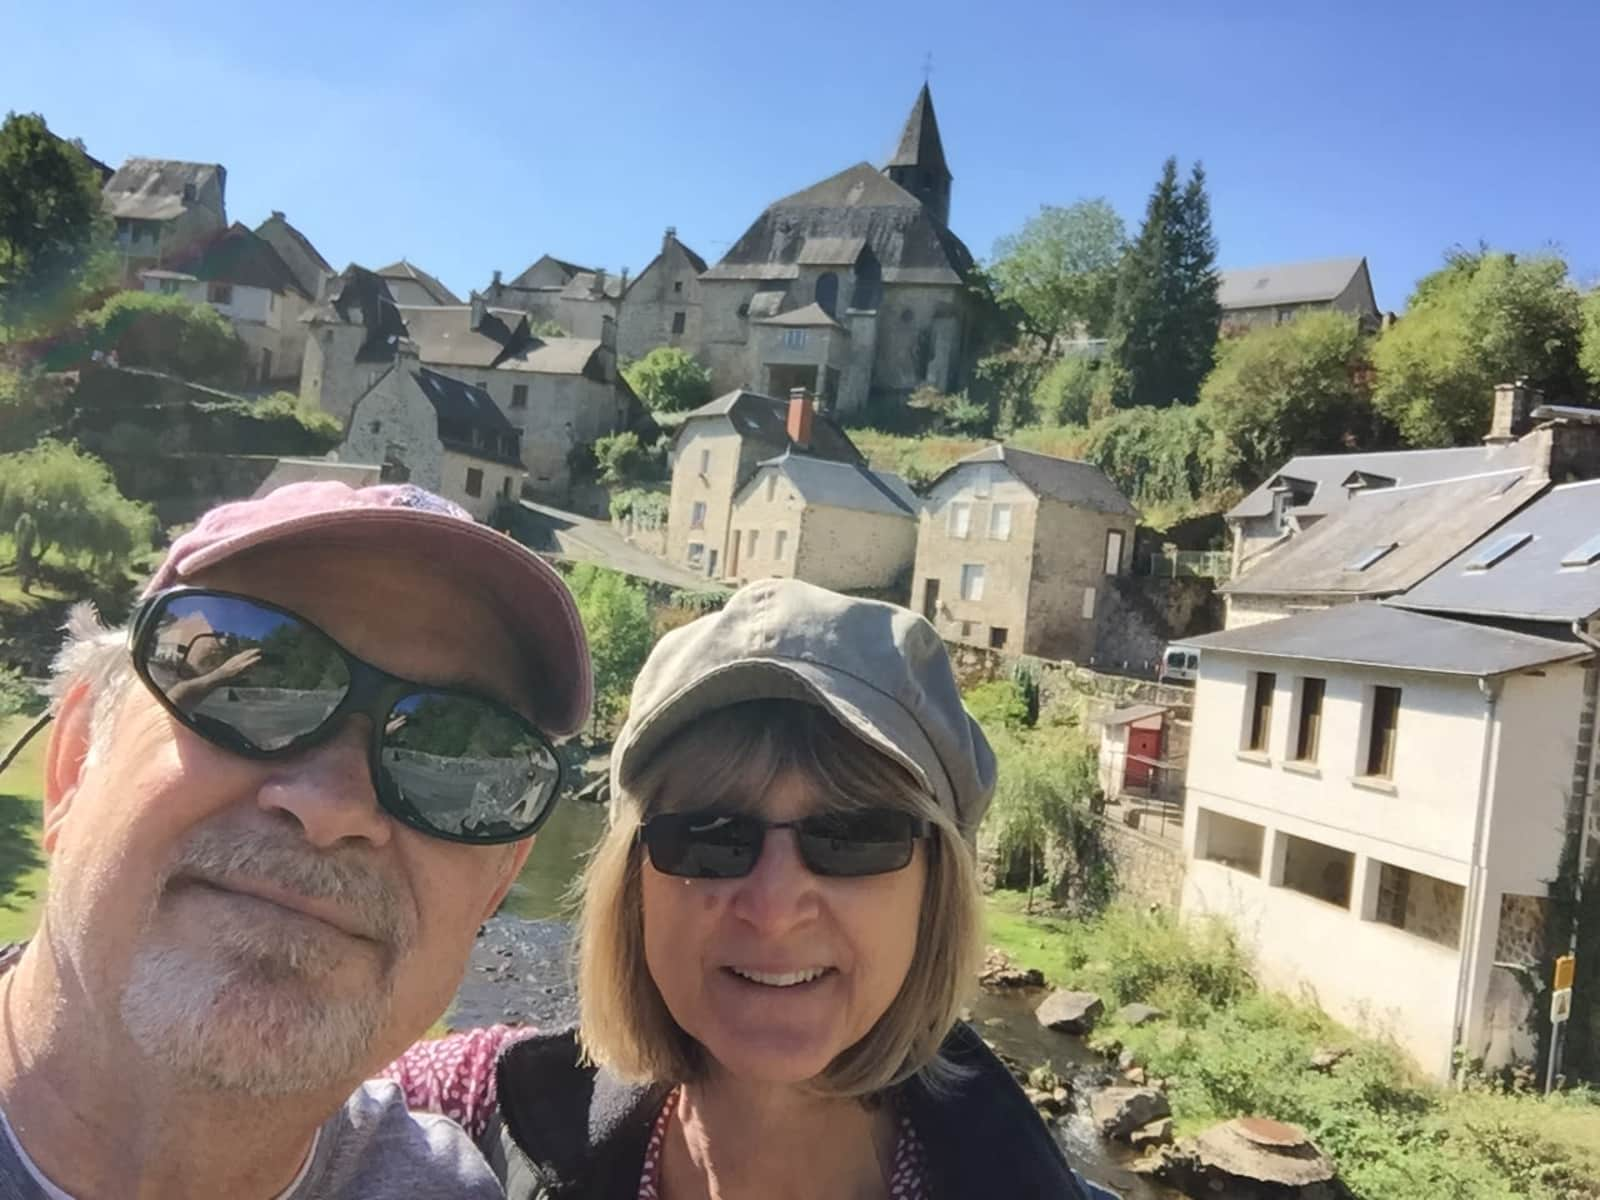 Bill & Cheri from Toulouse, France